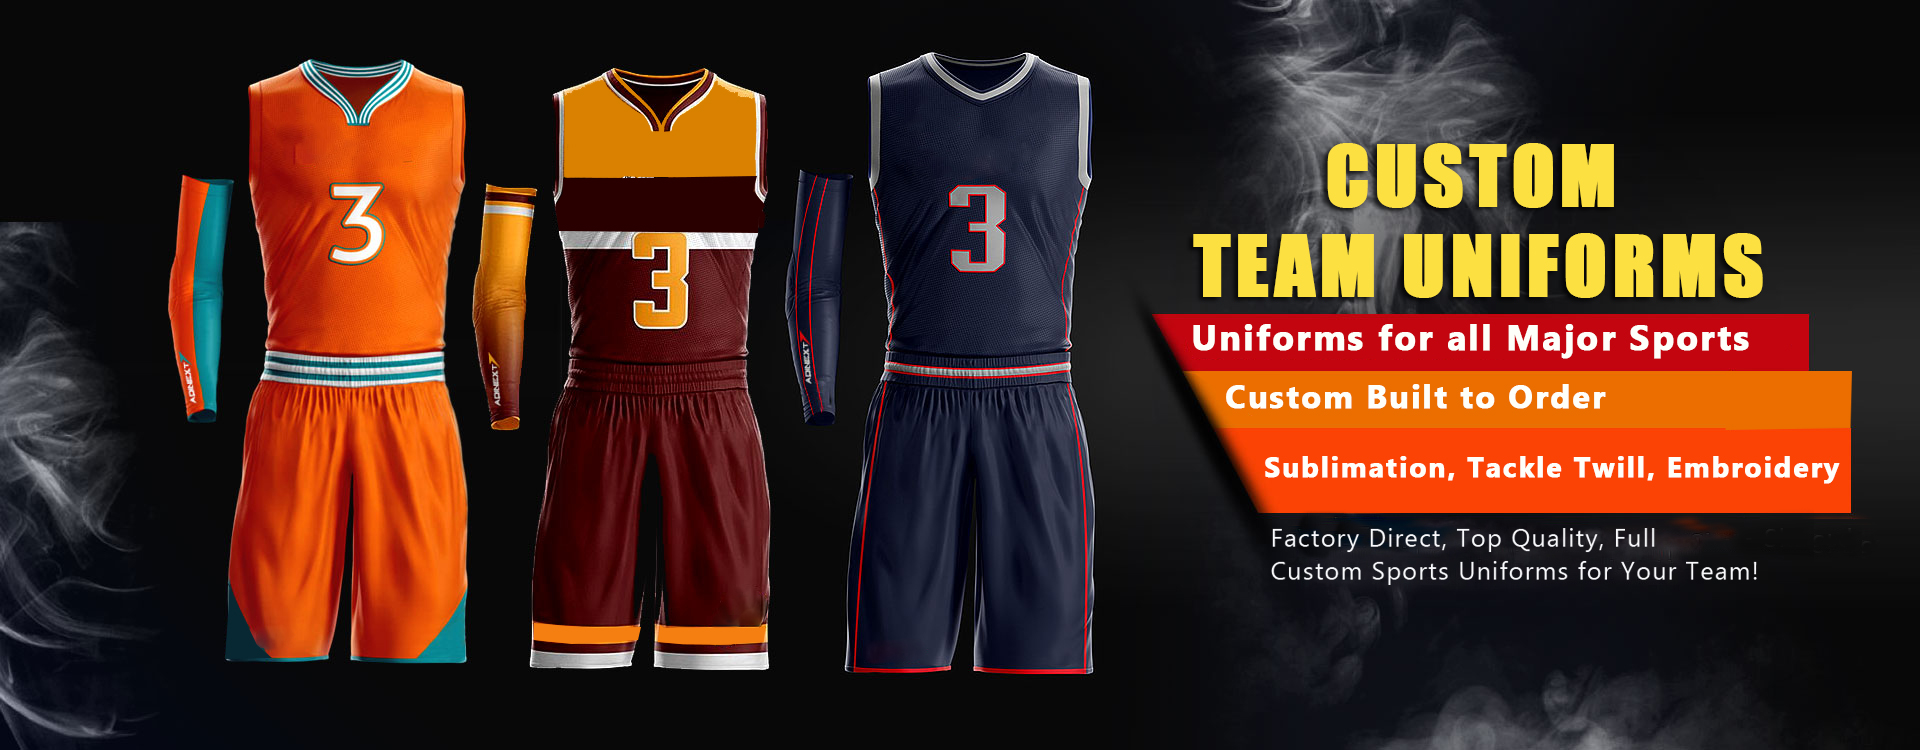 Affordable Uniforms Online empowers teams